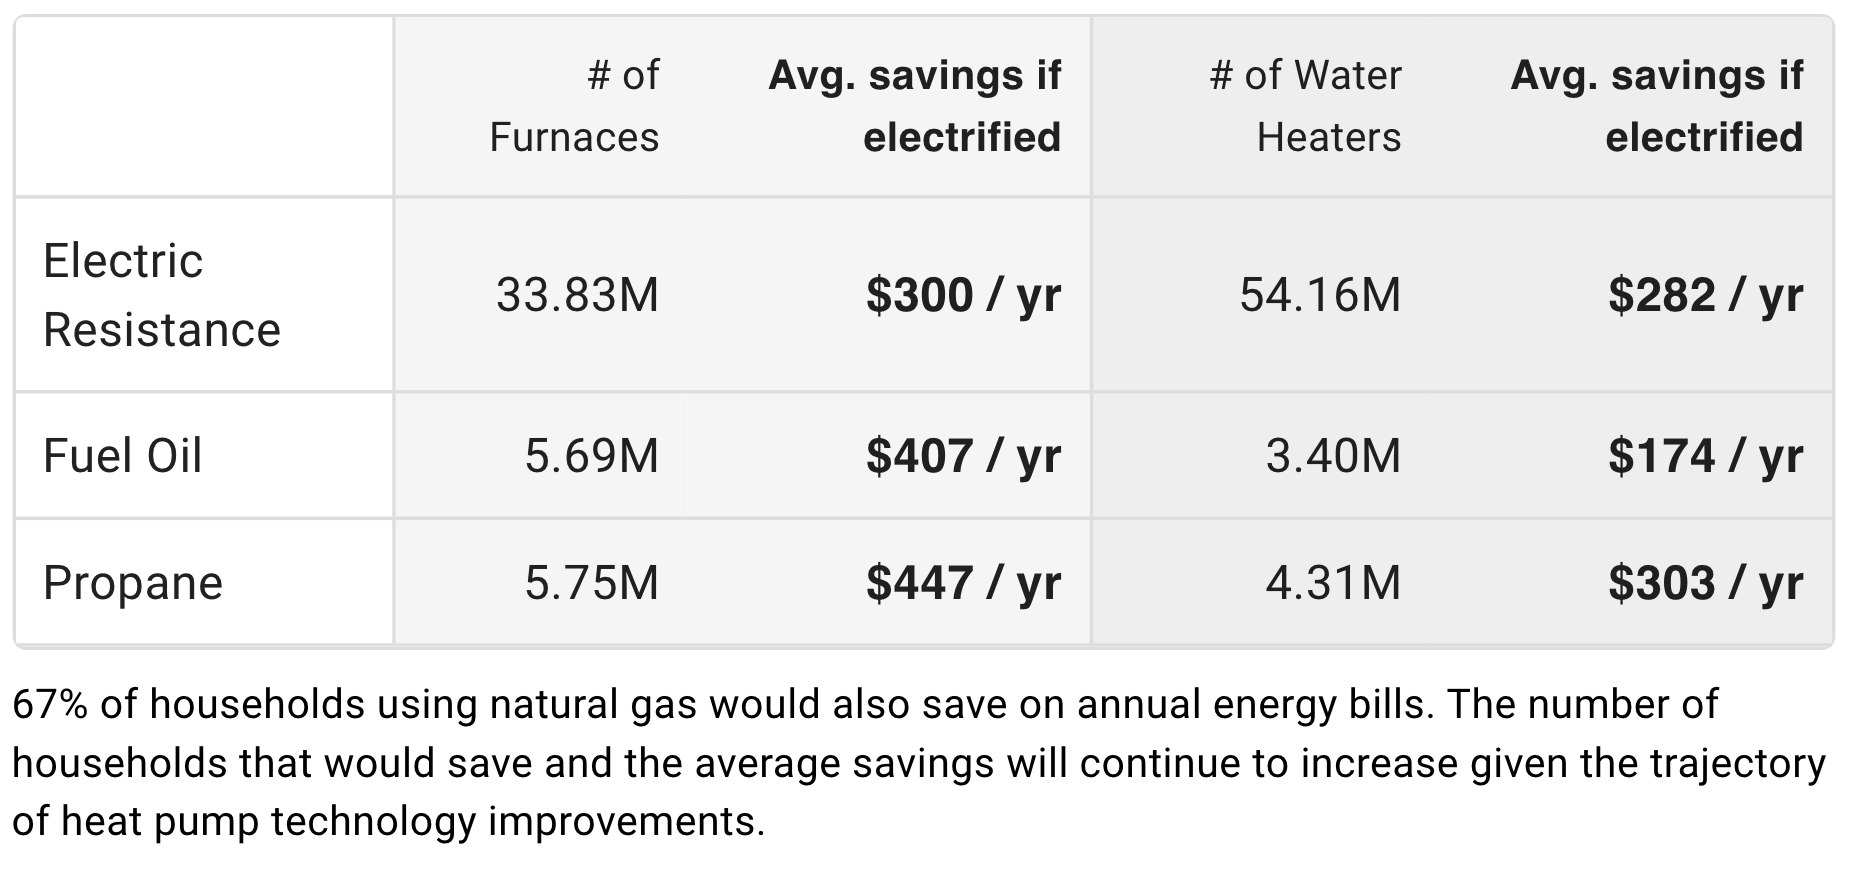 Table showing the large savings households currently using electric resistance, fuel oil, and propane would gain from electrification. Replacing 33.38M electric resistance furnaces, 5.69M fuel oil furnaces, and 5.75M propane furnaces would result in average savings of $300 per year, $407 per year, and $447 per year, respectively. Similarly, replacing 54.16M electric resistance water heaters, 3.4M fuel oil water heaters, and 4.31M propane water heaters would result in average savings of $282 per year, $174 per year, and $303 per year, respectively.